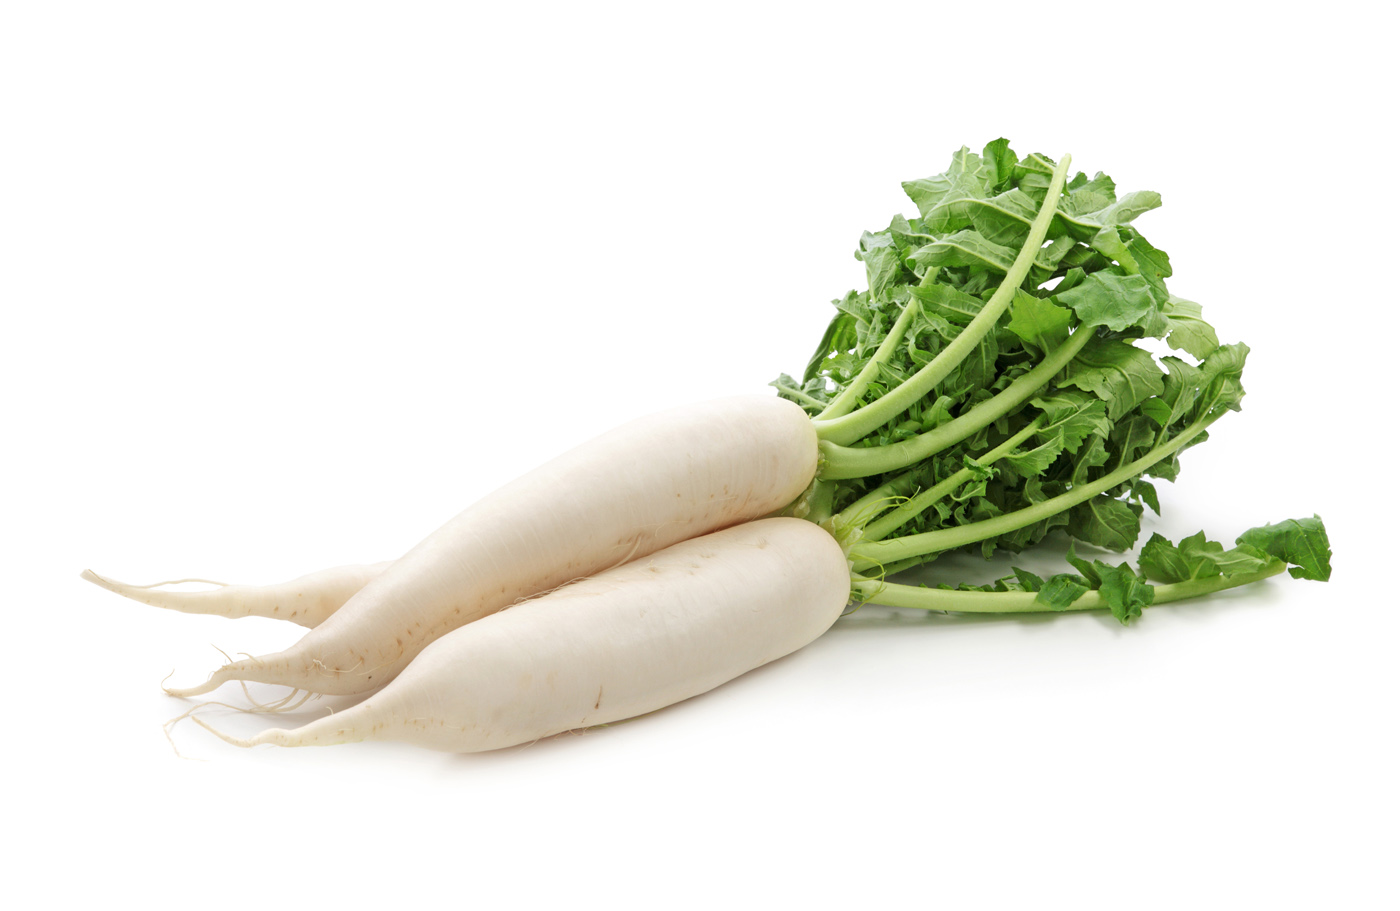 Daikon radishes isolated on white background